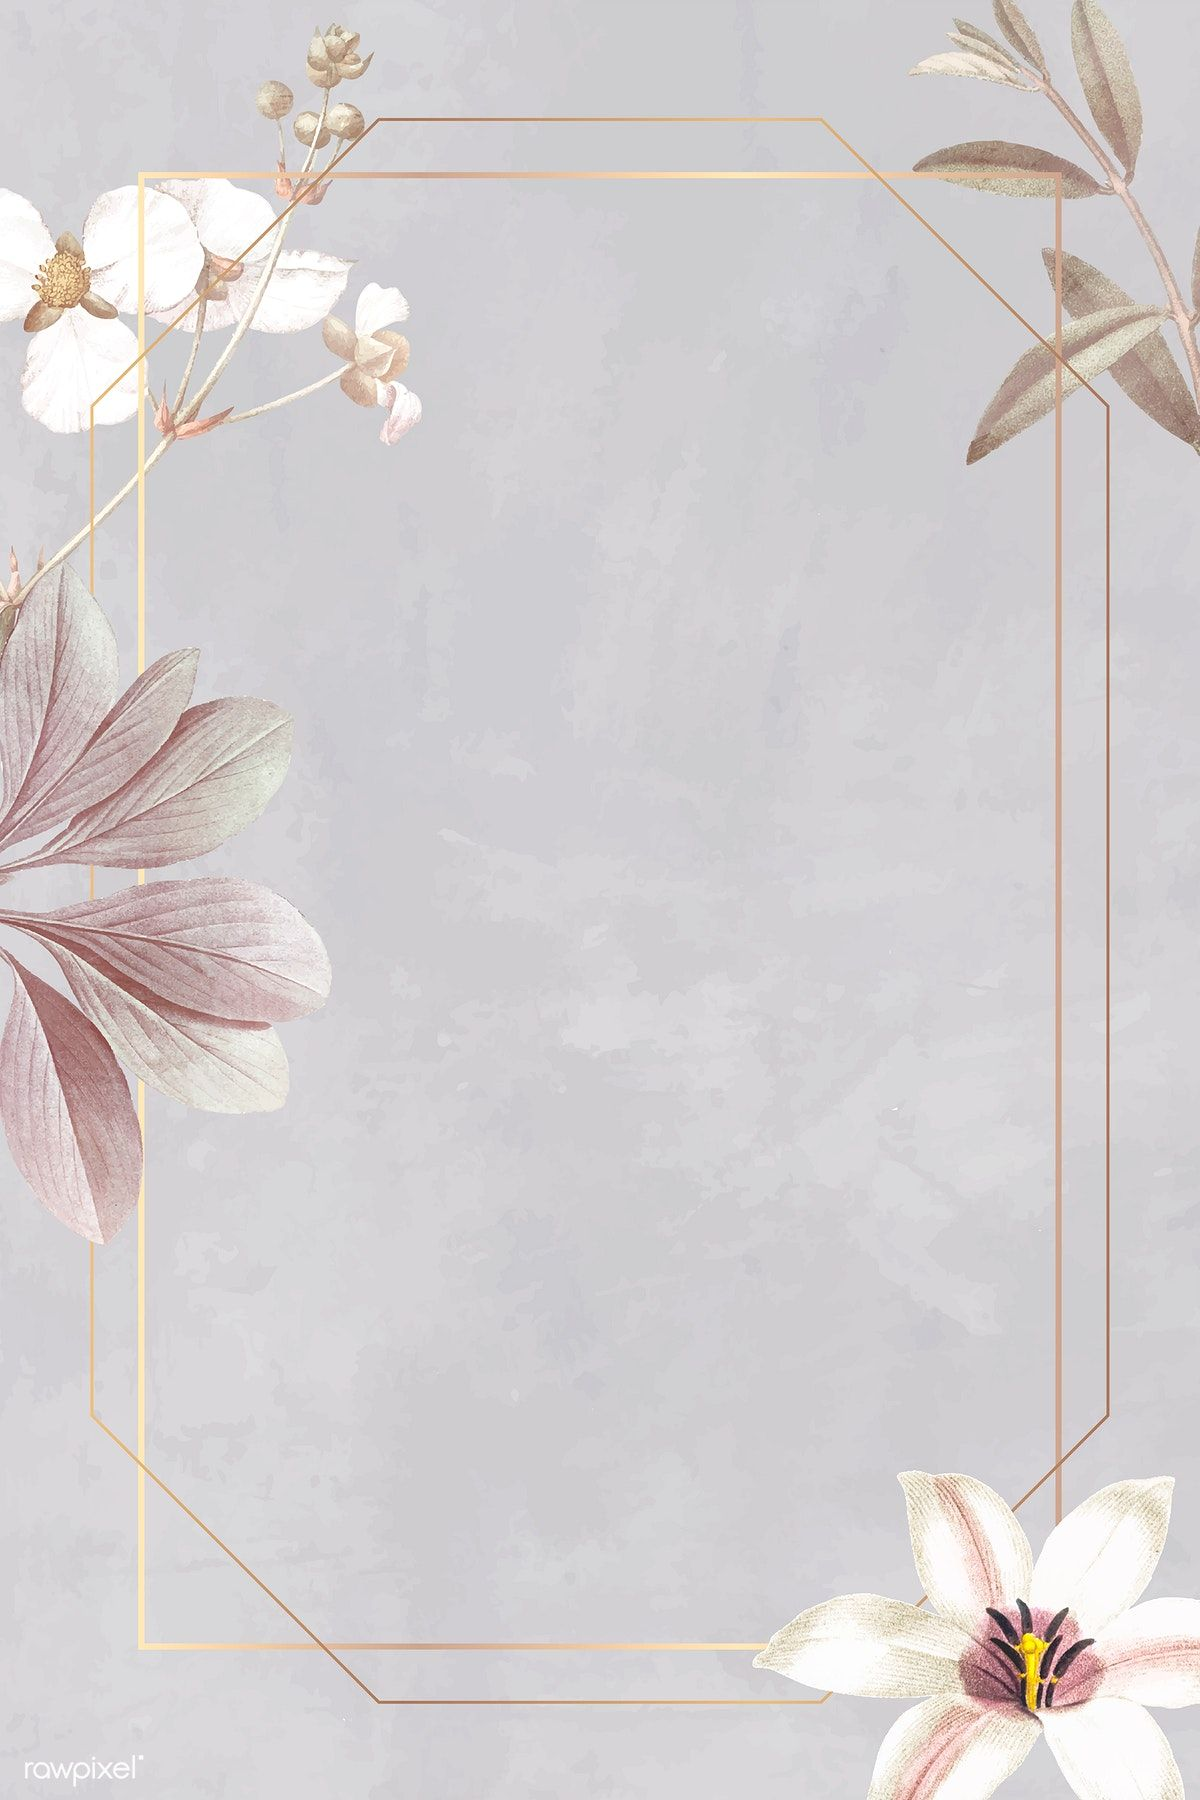 Download premium vector of Frame with lily and bulltongue arrowhead background vector by Sasi about frame lily, pink grey flowers, flower frame, rectangled frame, and bulltongue 1213712